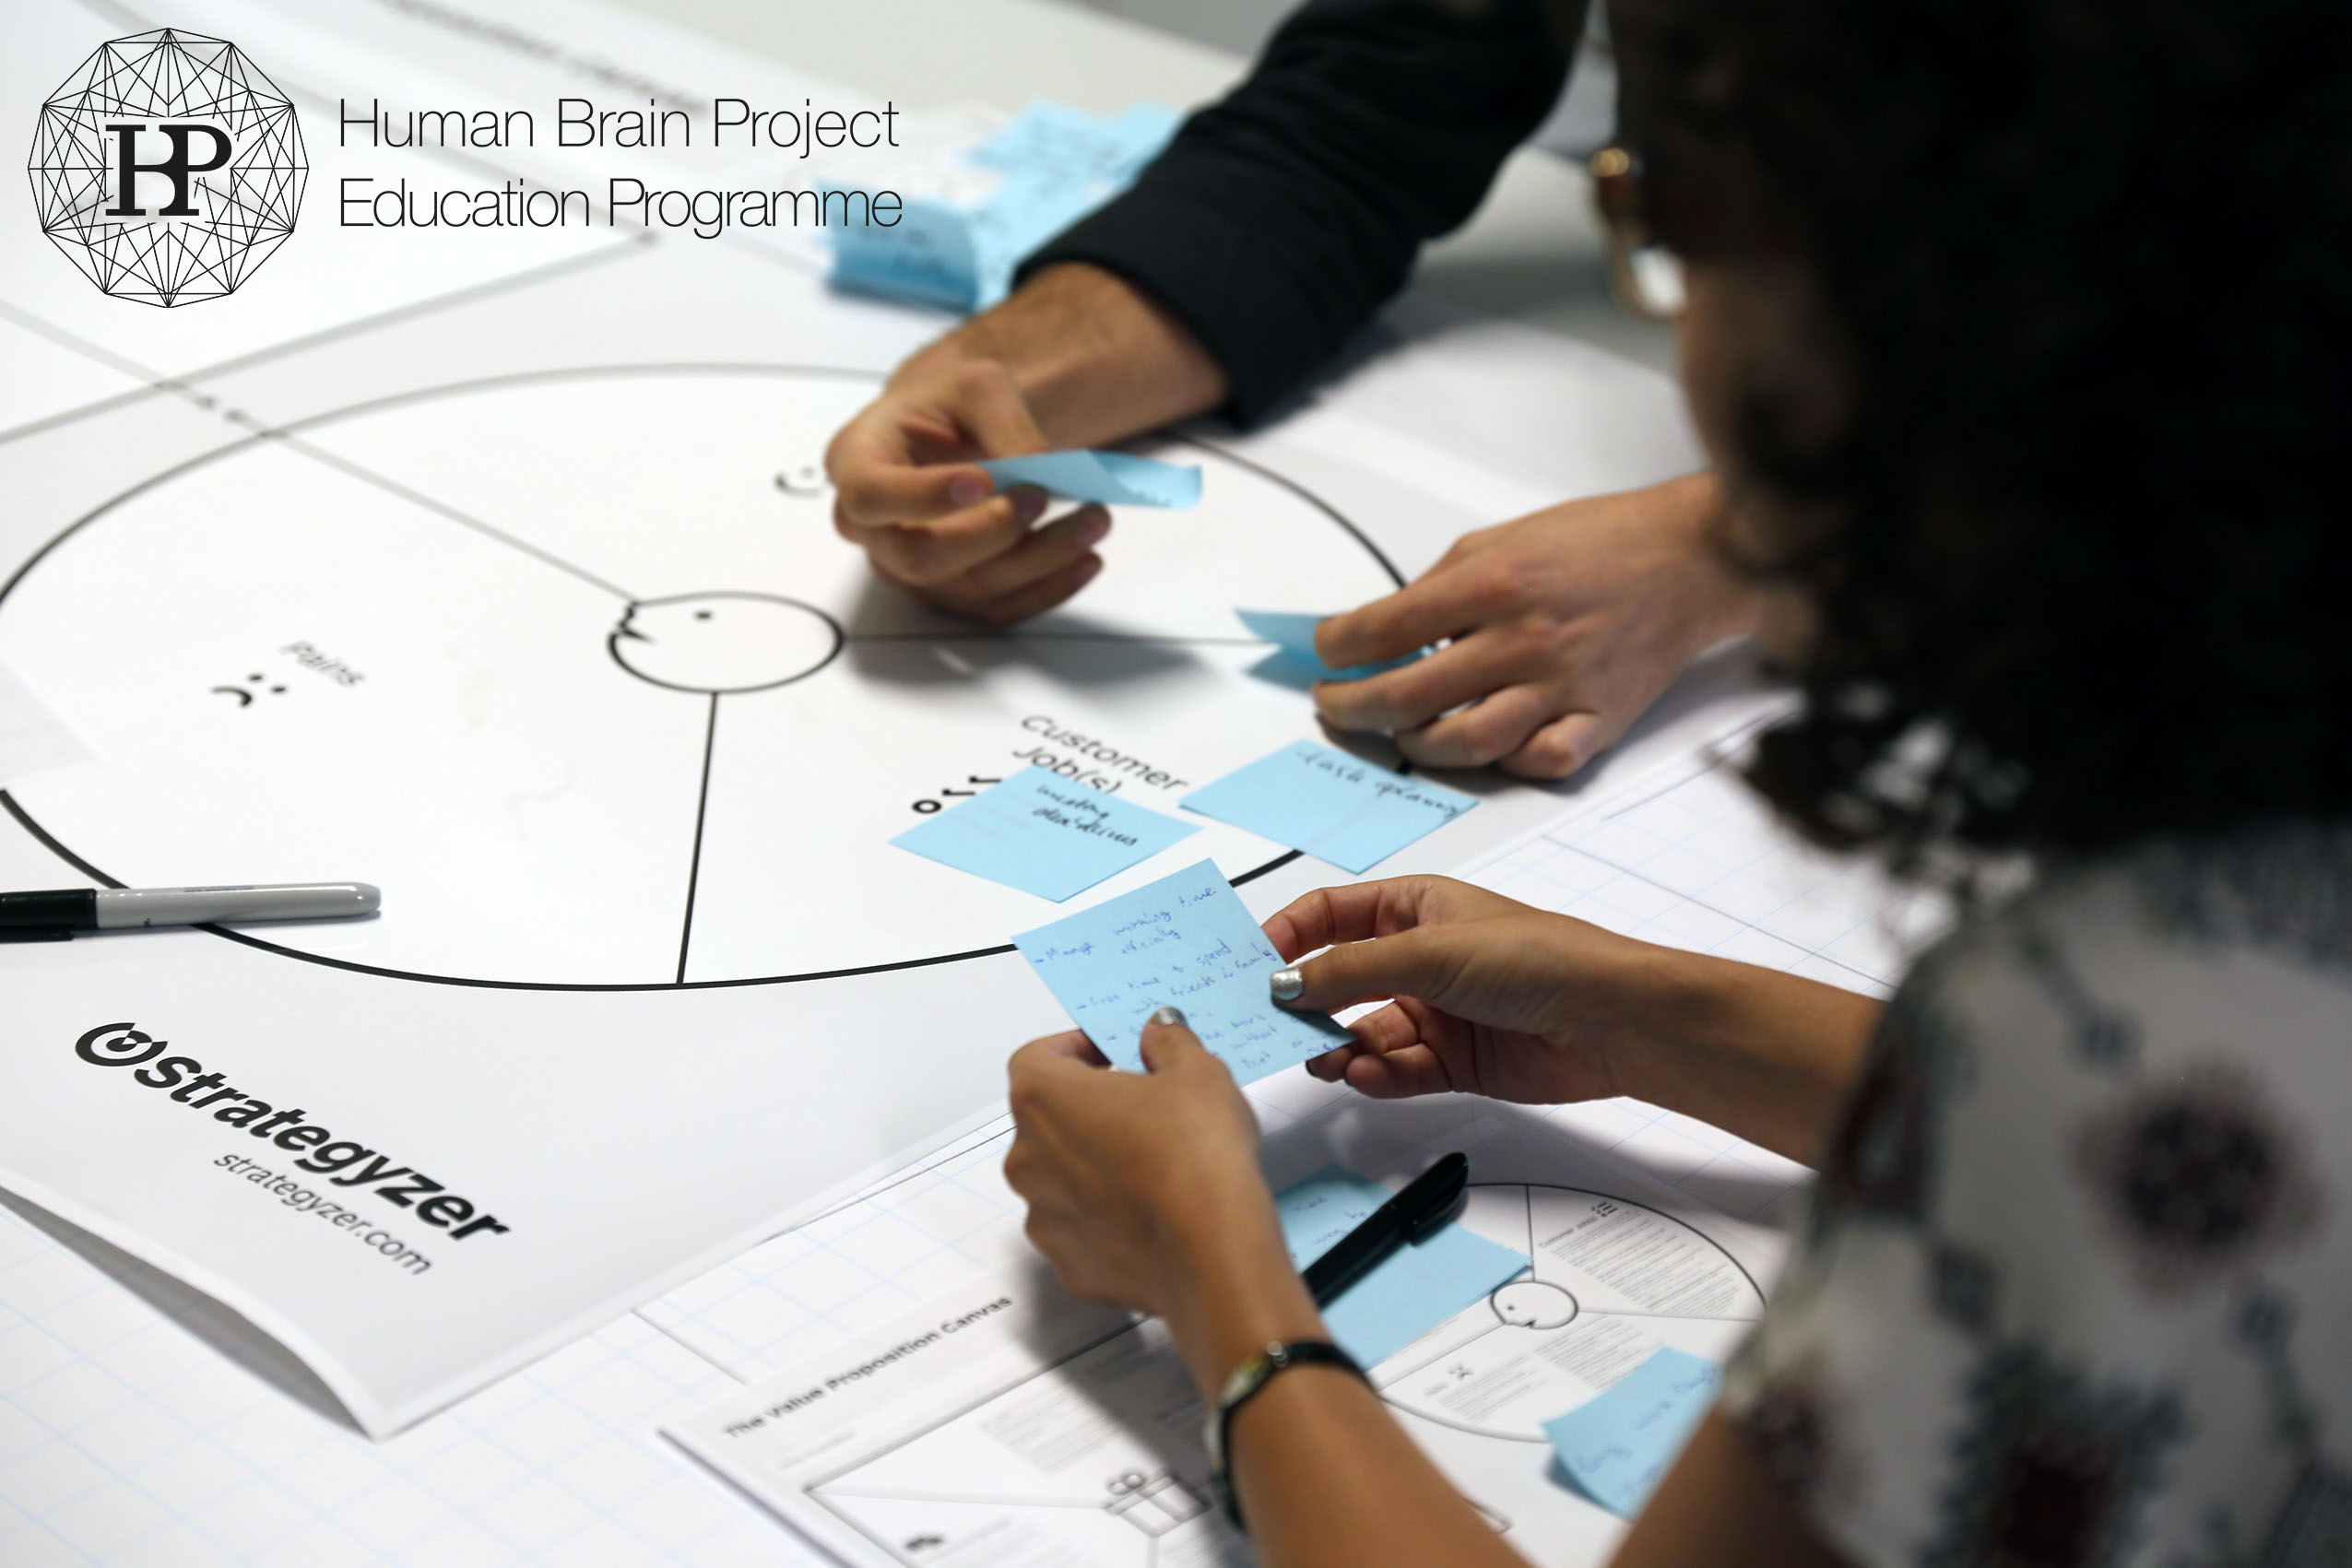 HBP_1st_IPR_workshop_14.JPG -